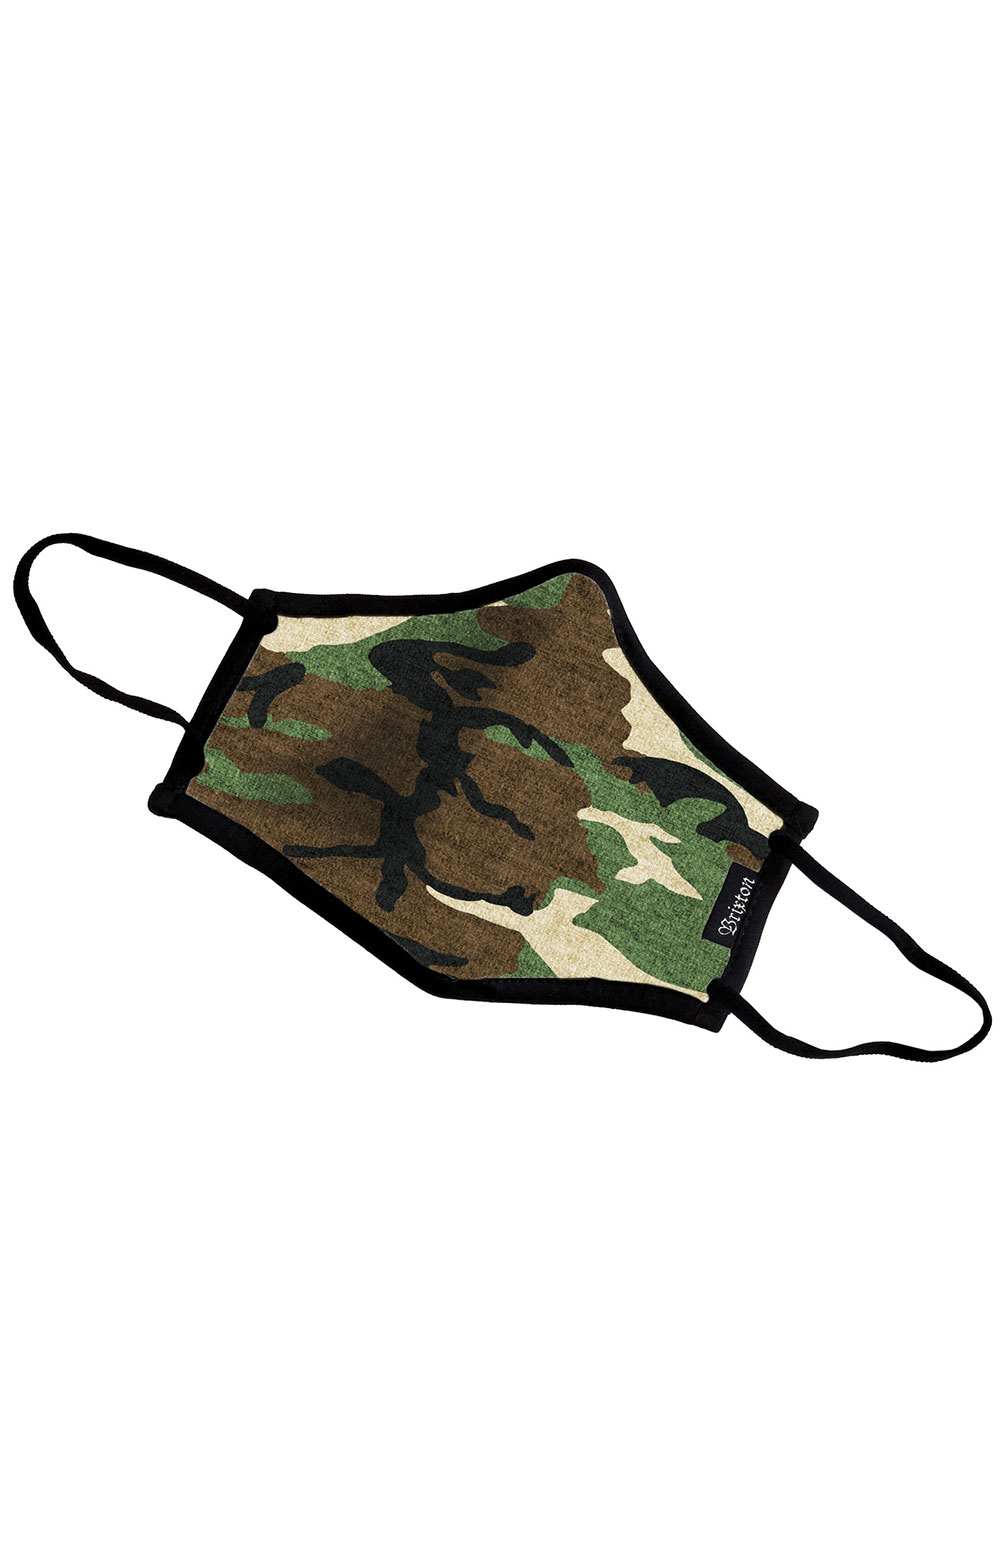 Antimicrobial 4-Way Stretch Face Mask - Camo